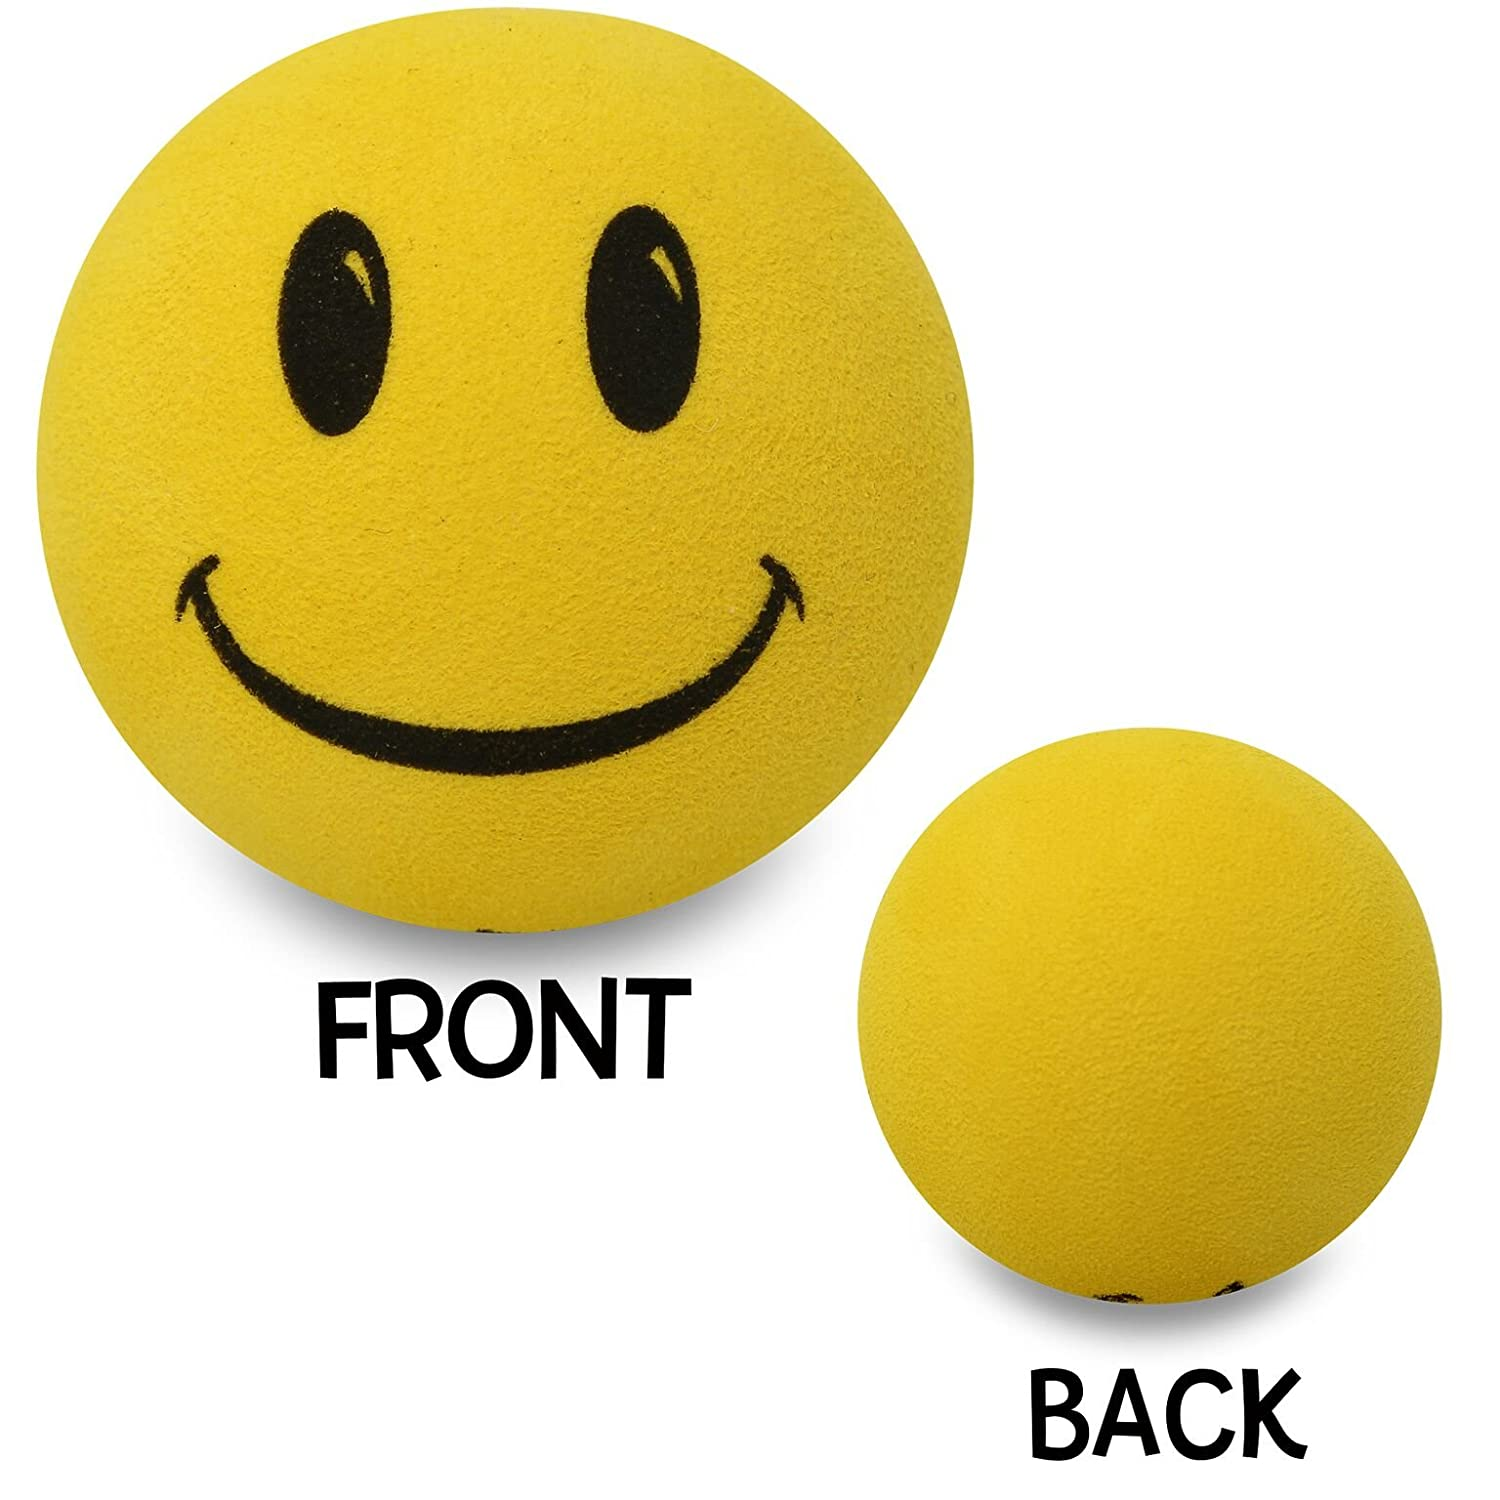 Collectible Auto Accessories Free Happy Antenna Ball Car Antenna Toppers//Rear View Mirror Danglers//Mirror Hanger White Smiley 2 Georgia Bulldogs College Football Quantity 3 pcs Pack